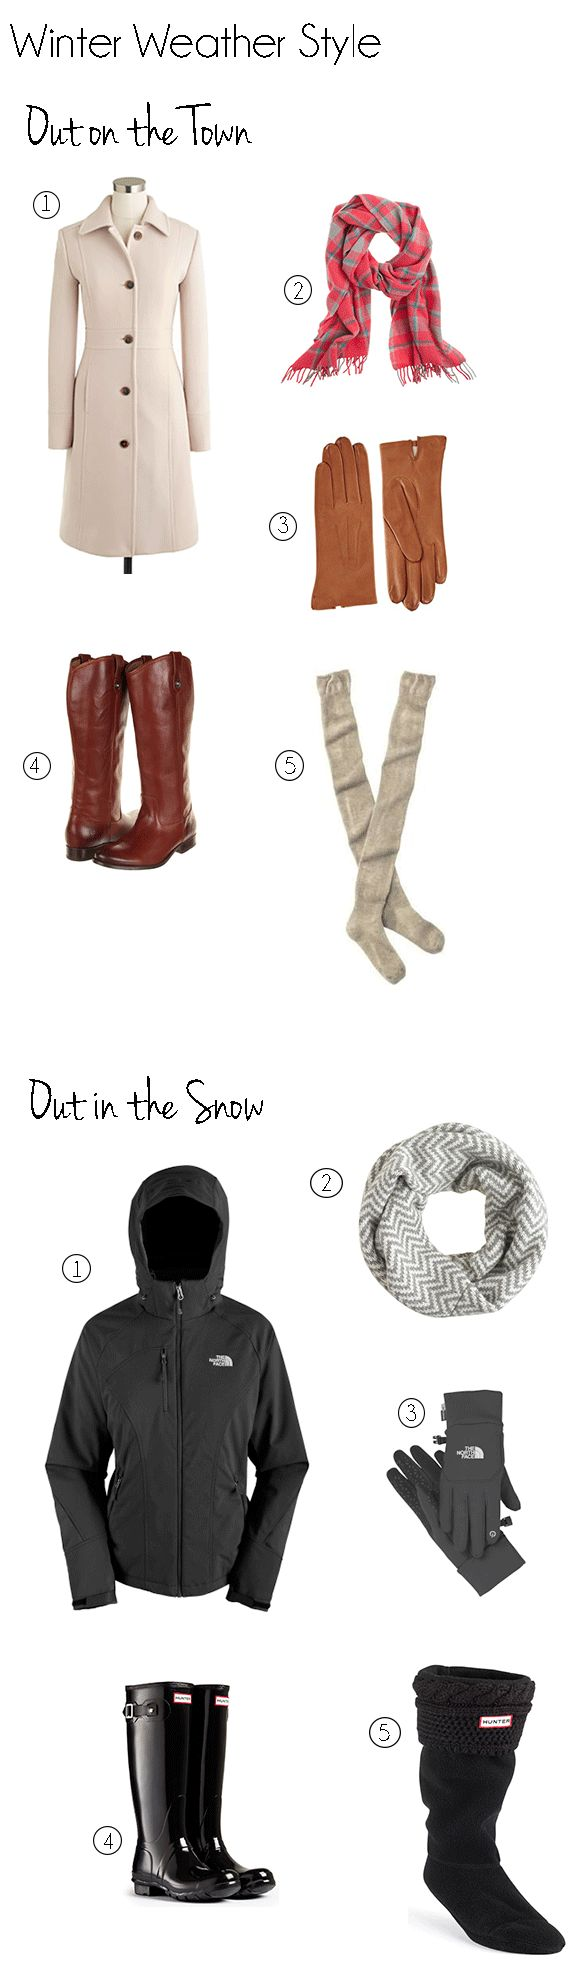 How to dress cute and warm for cold weather